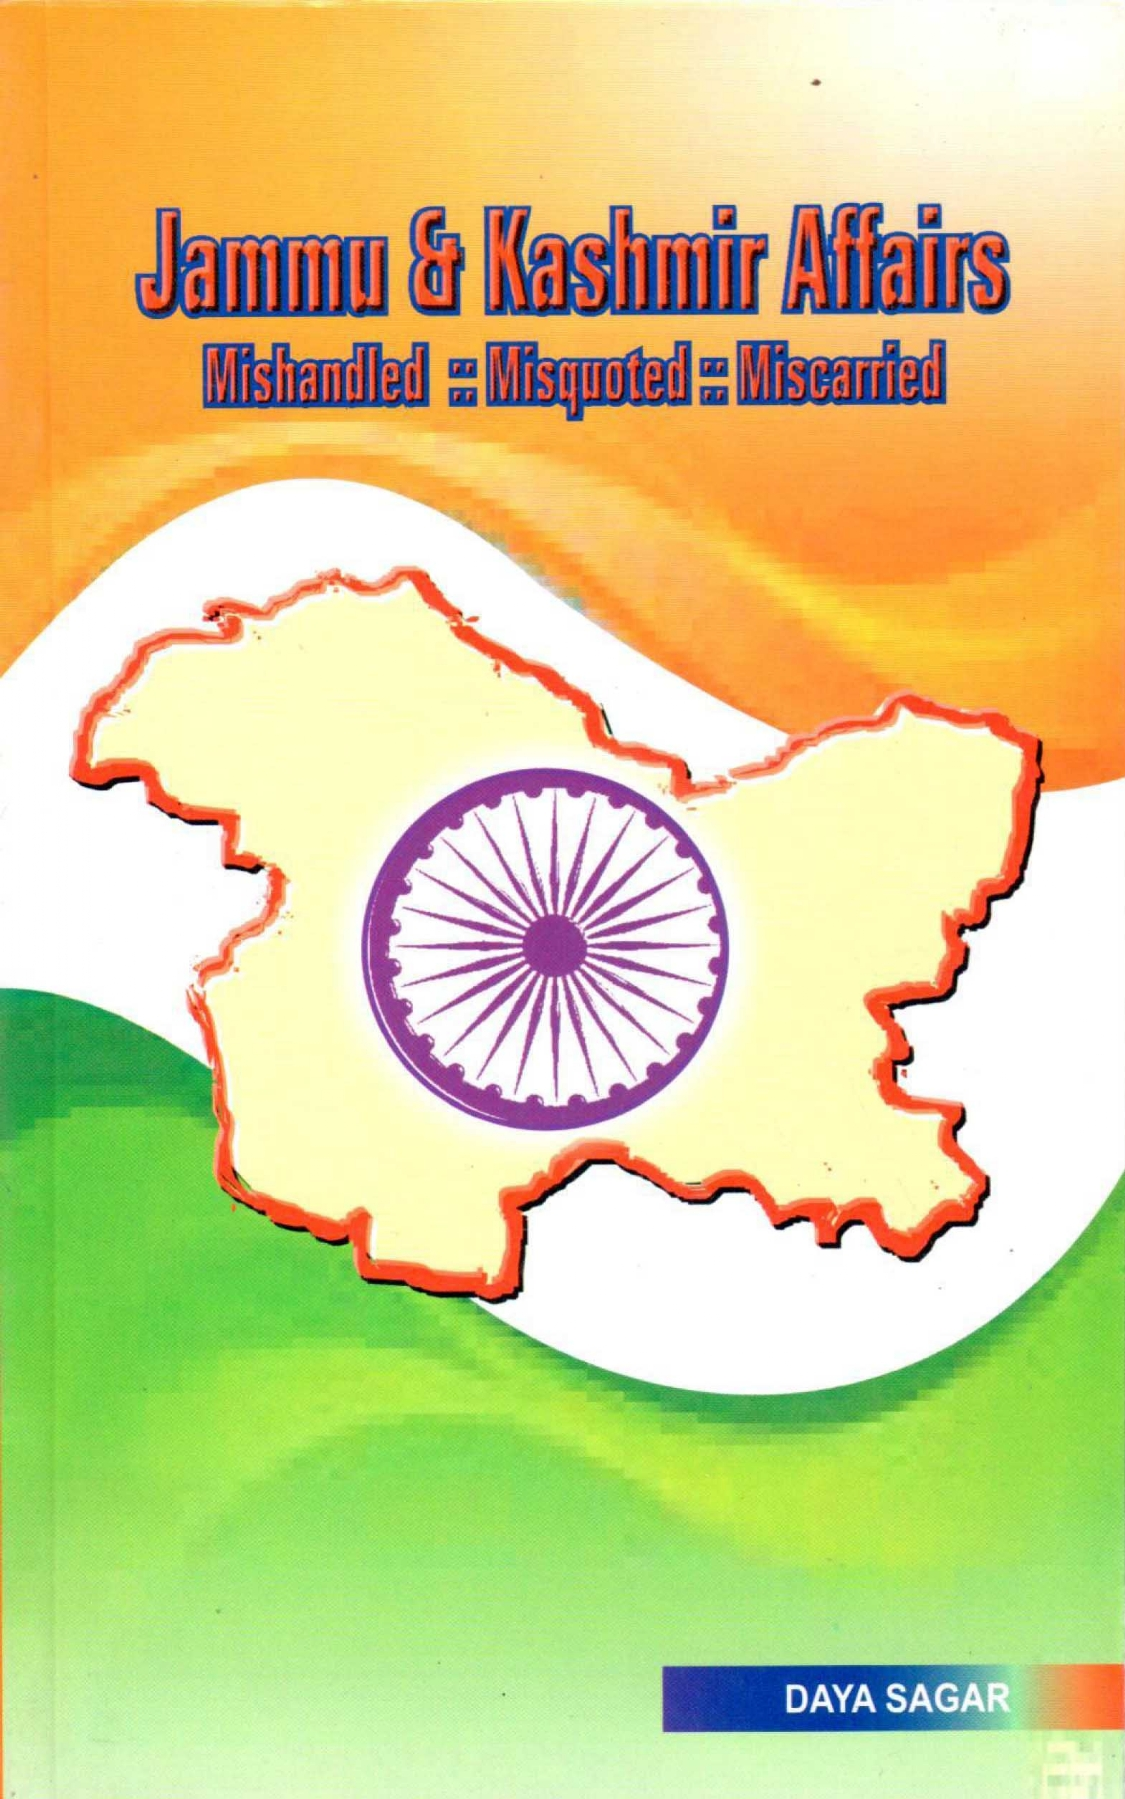 Jammu & Kashmir Affairs- mishandled :: Misquoted :: Miscarried